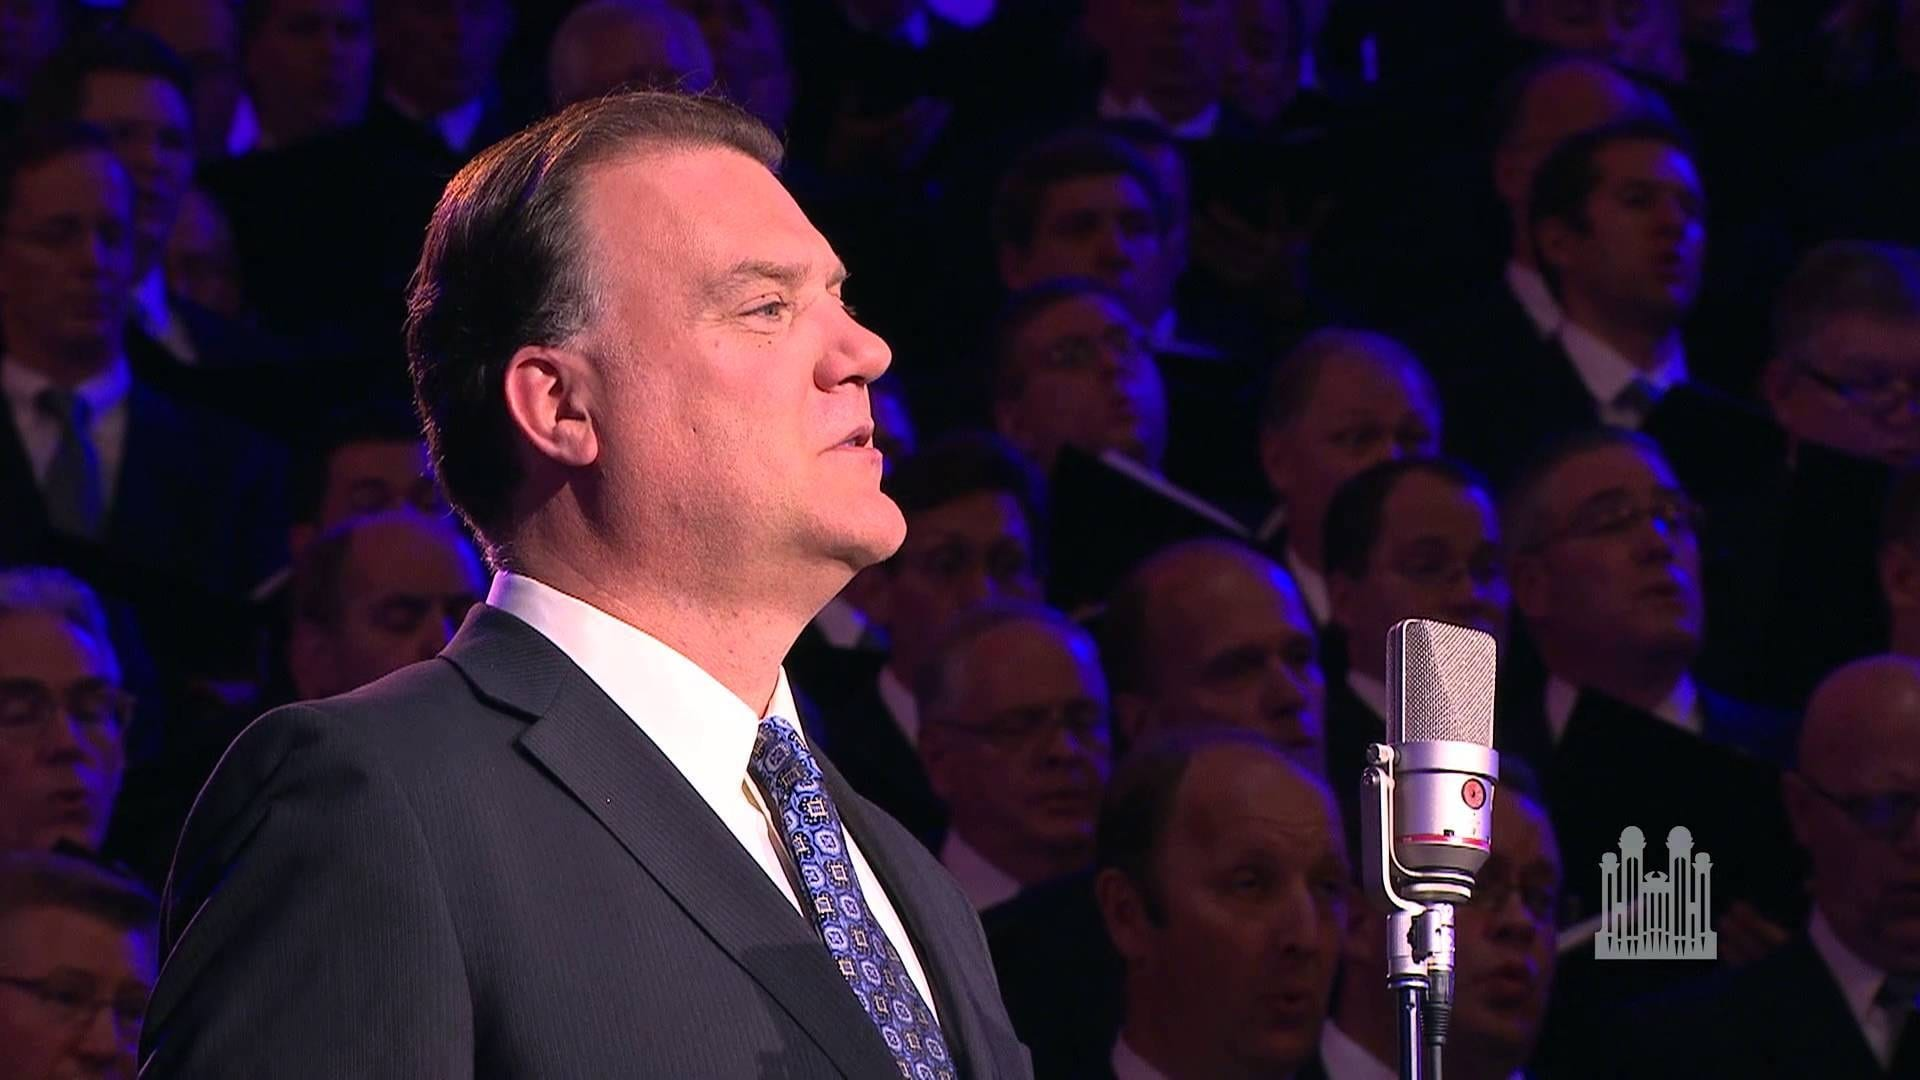 Christmas with the Mormon Tabernacle Choir and Orchestra at Temple Square featuring Frederica von Stade & Bryn Terfel